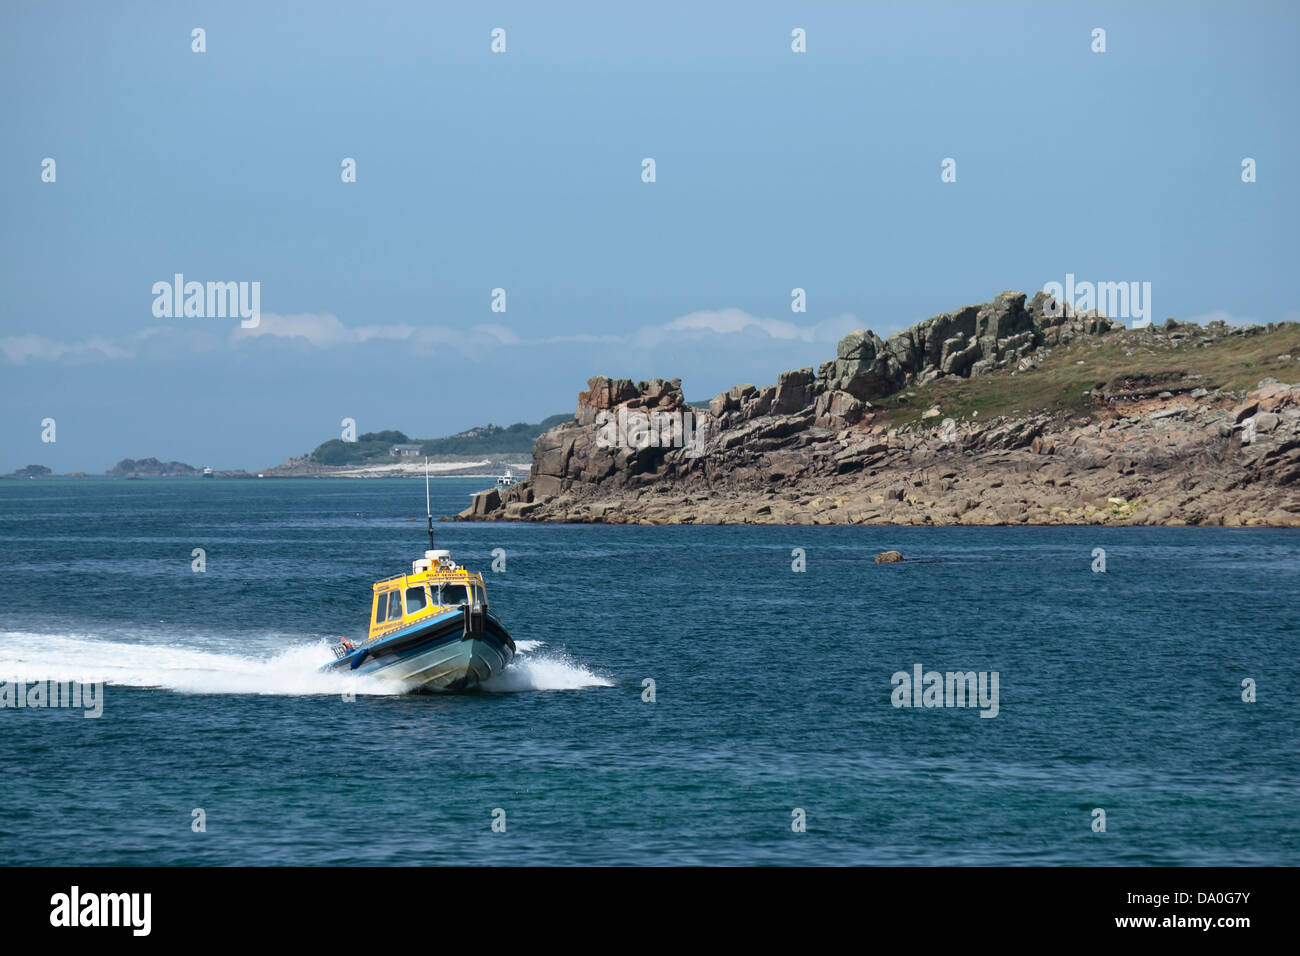 A Boat Returning to St Mary's Harbour, Isles of Scilly, UK - Stock Image